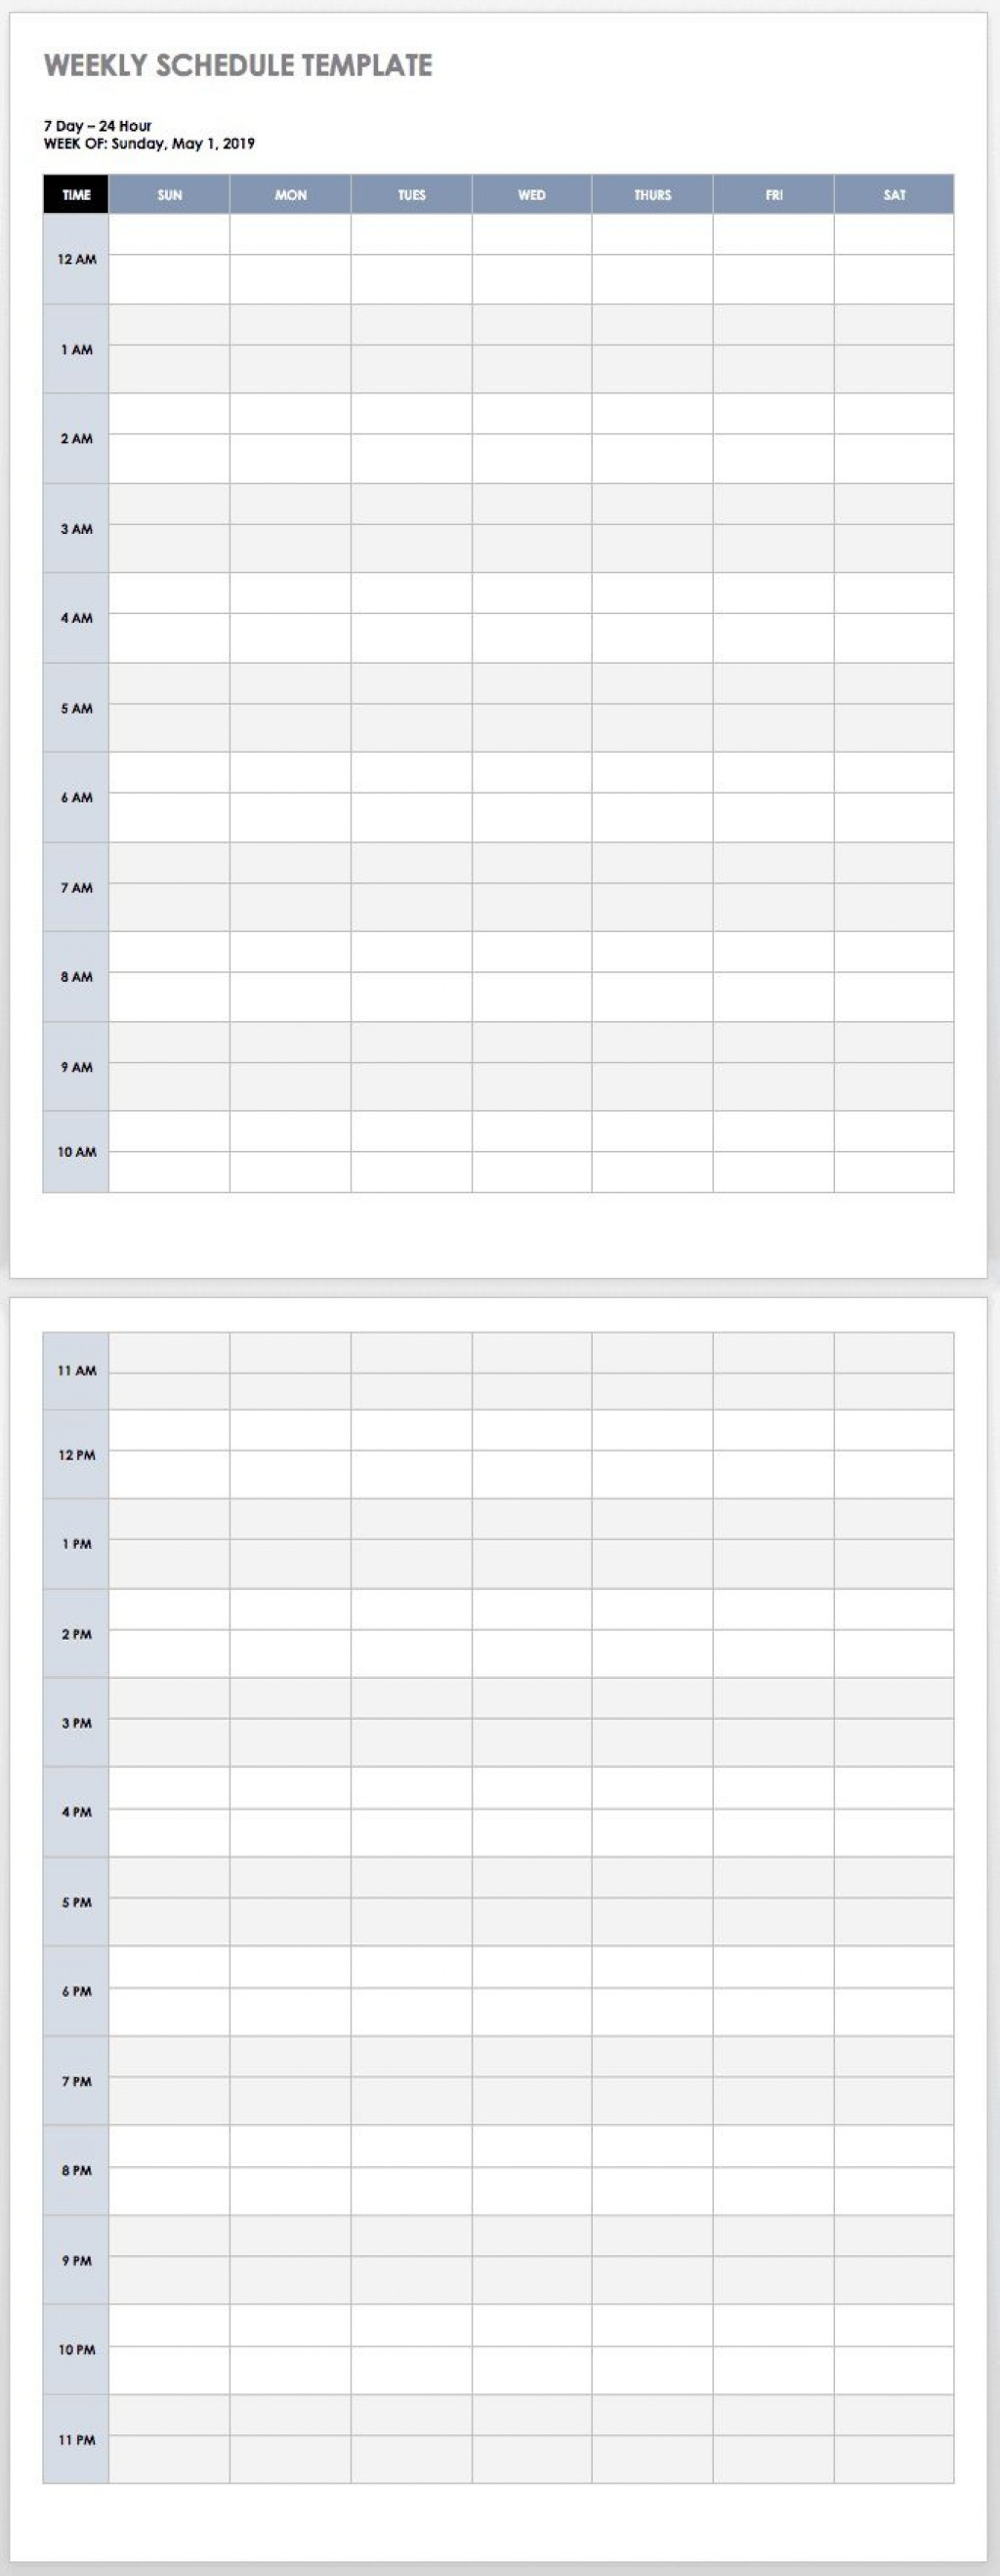 006 Beautiful Weekly Schedule Template Word Picture  School Work PlanLarge